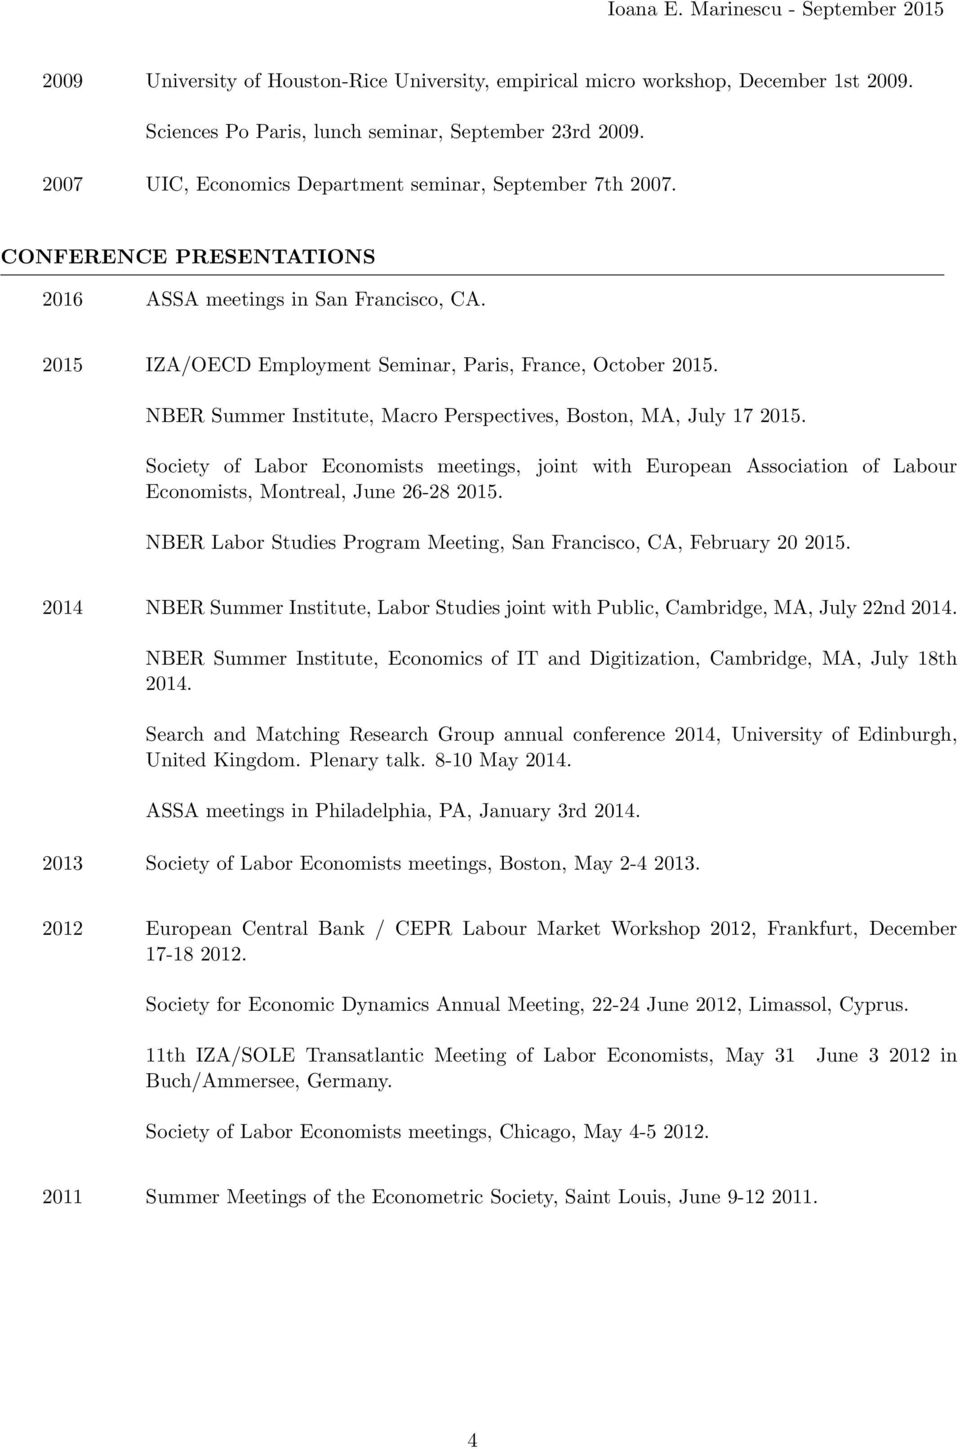 NBER Summer Institute, Macro Perspectives, Boston, MA, July 17 2015. Society of Labor Economists meetings, Economists, Montreal, June 26-28 2015.